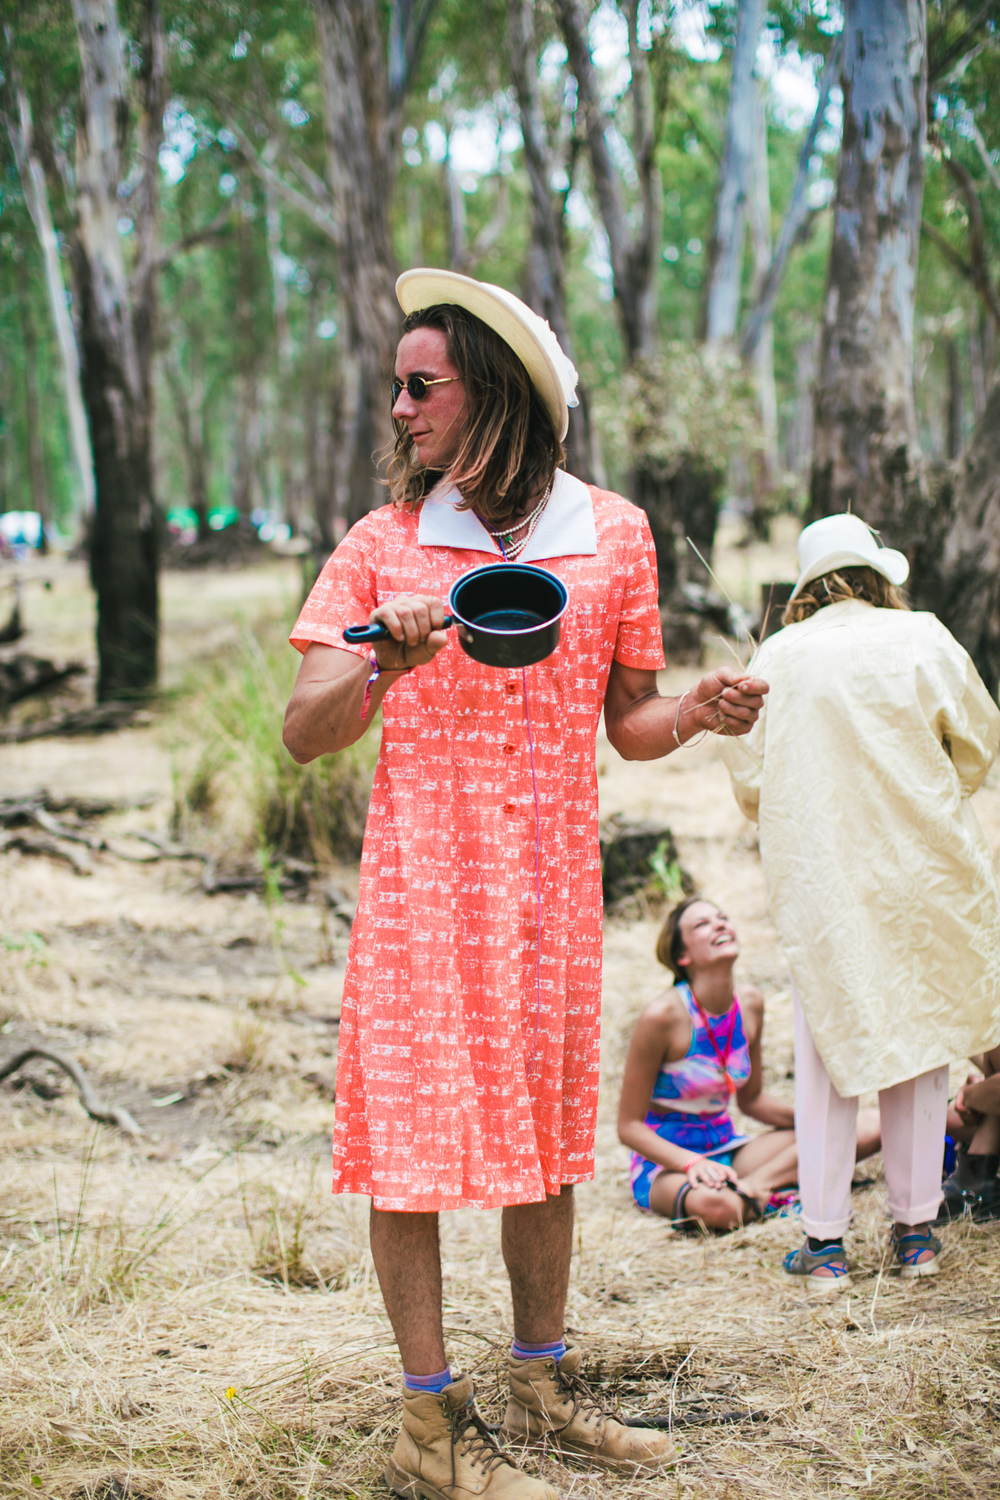 VOENA_STRAWBERRY_FIELDS_FESTIVAL_2014_PHOTOS_DOOF_AUSTRALIA-51.jpg